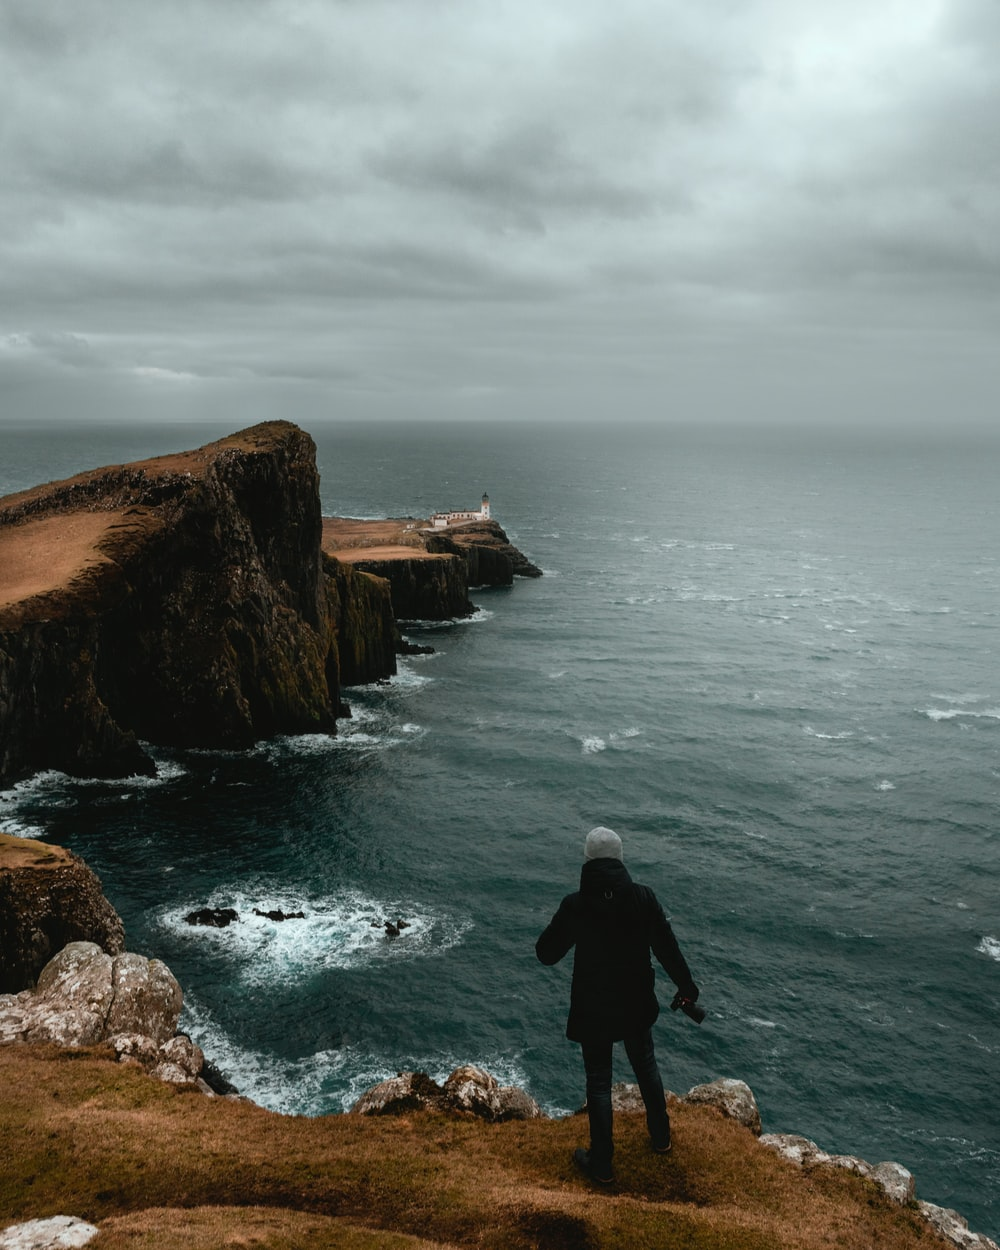 man in black jacket standing on brown rock formation near body of water during daytime